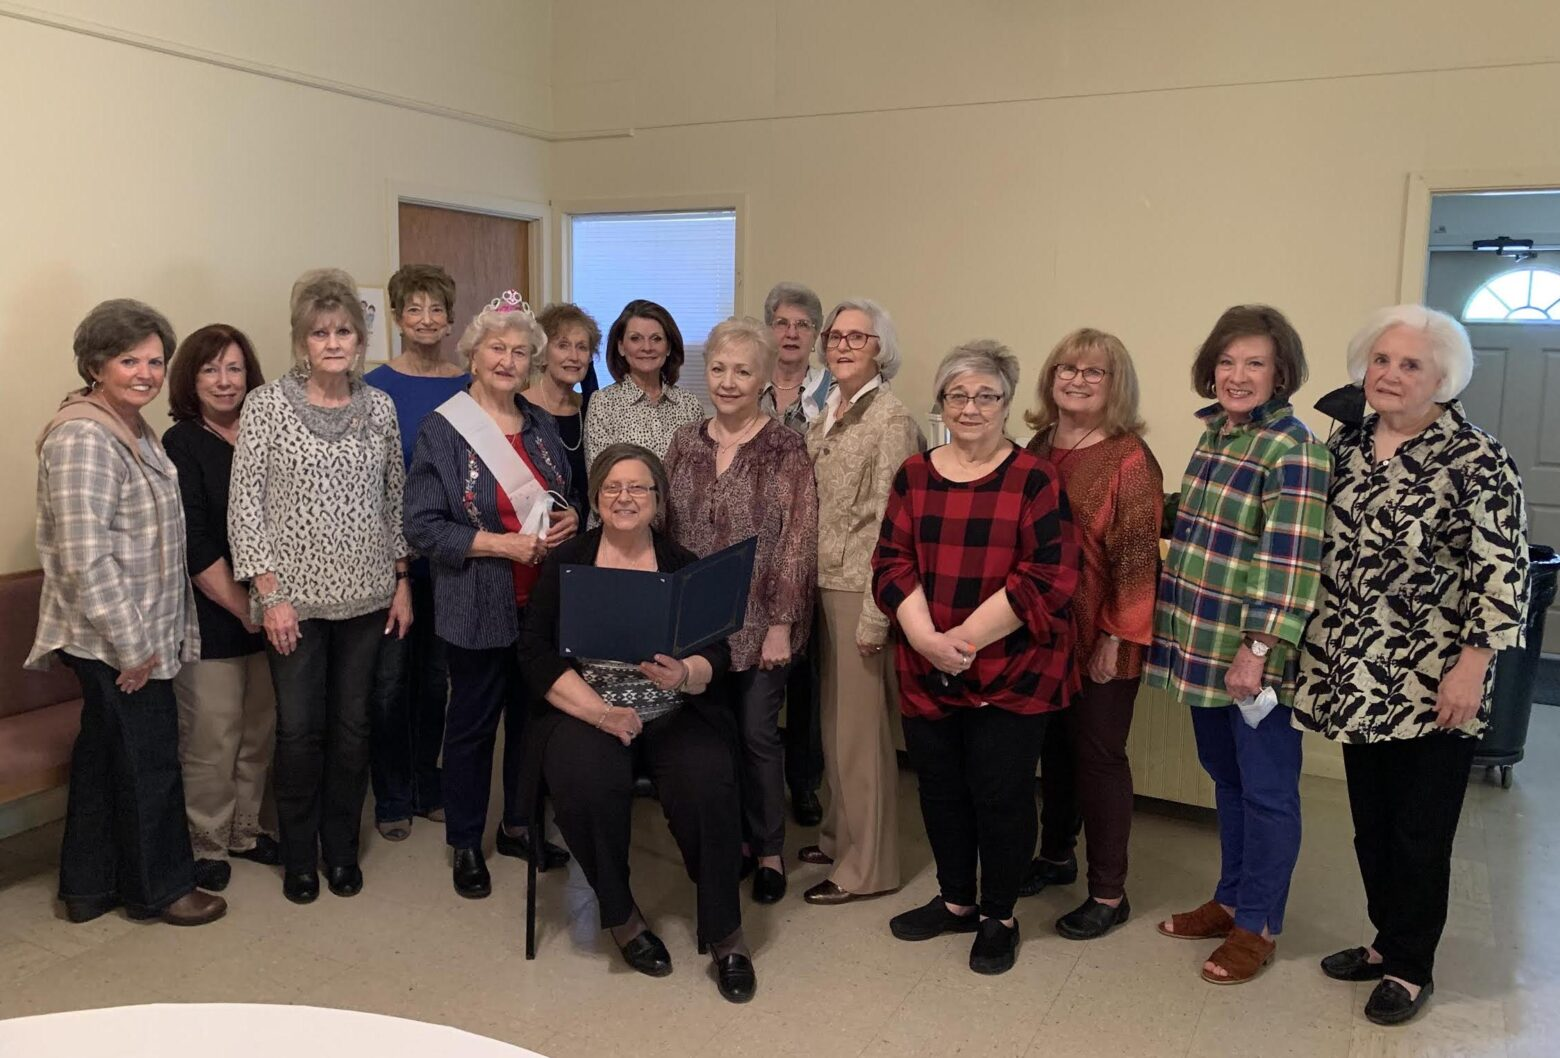 Warren Woman's Club and City of Warren proclaim October Domestic Violence Awareness Month